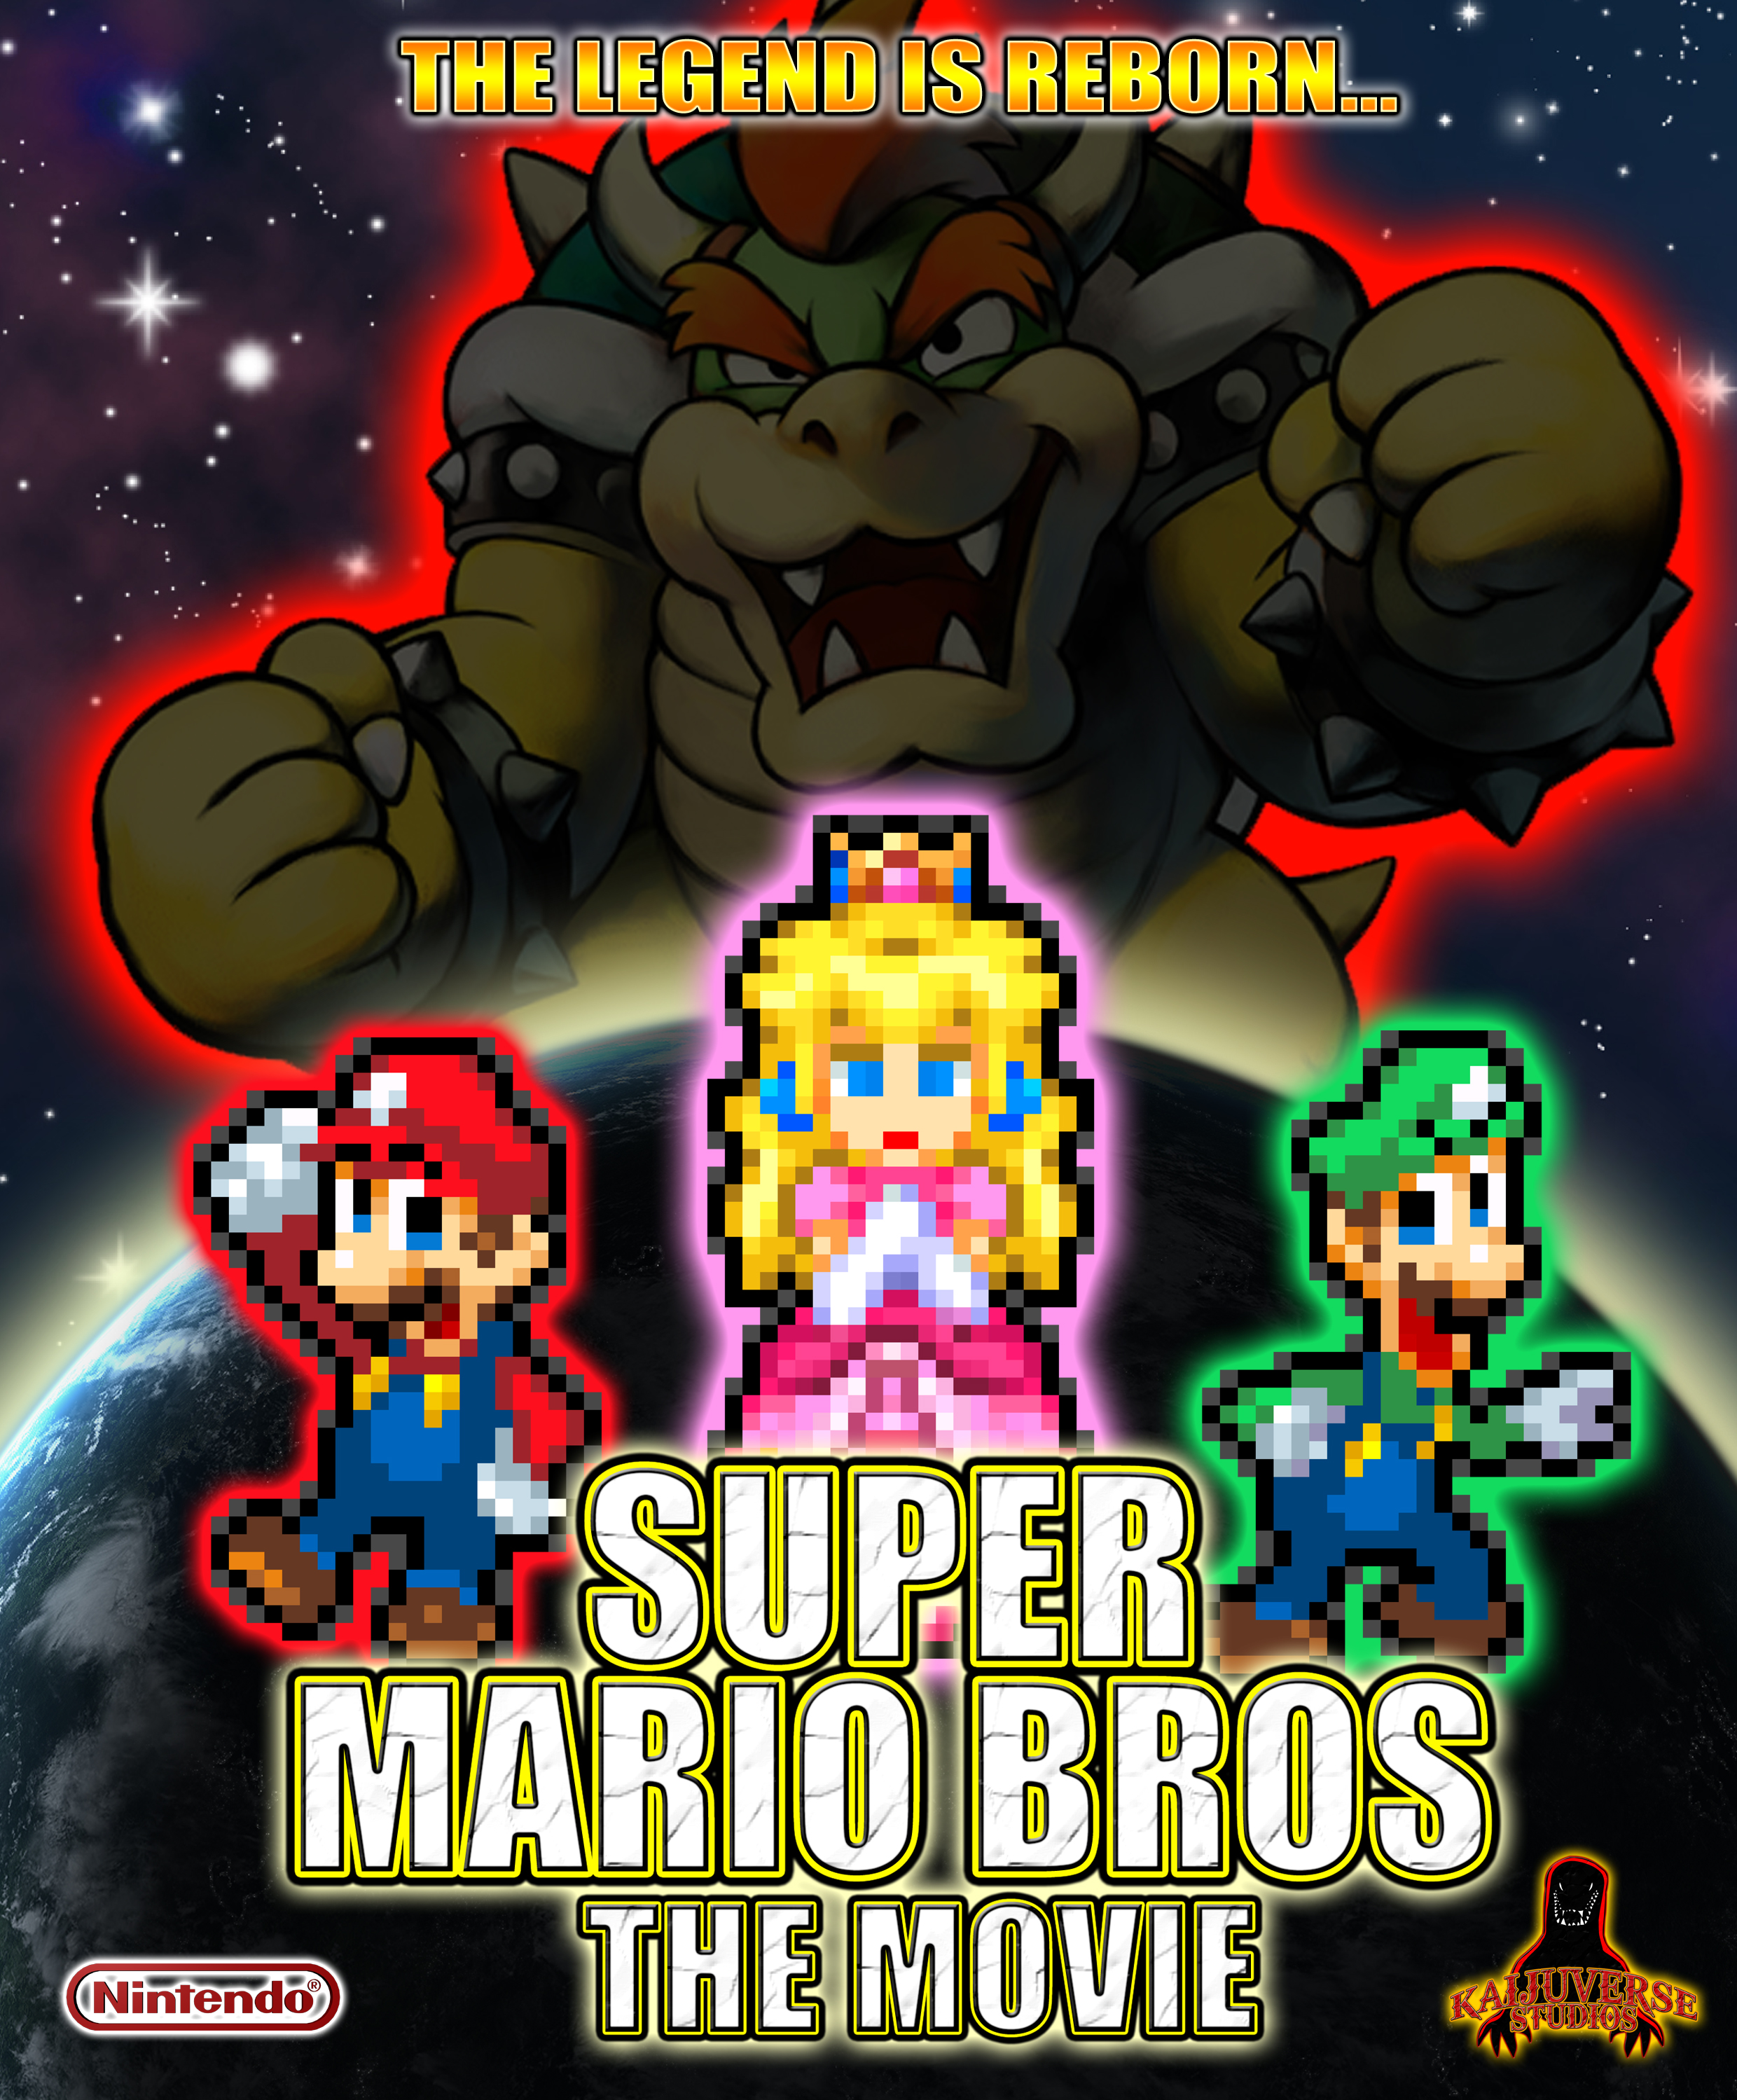 Super Mario Bros The Movie Final Poster by AsylusGoji91